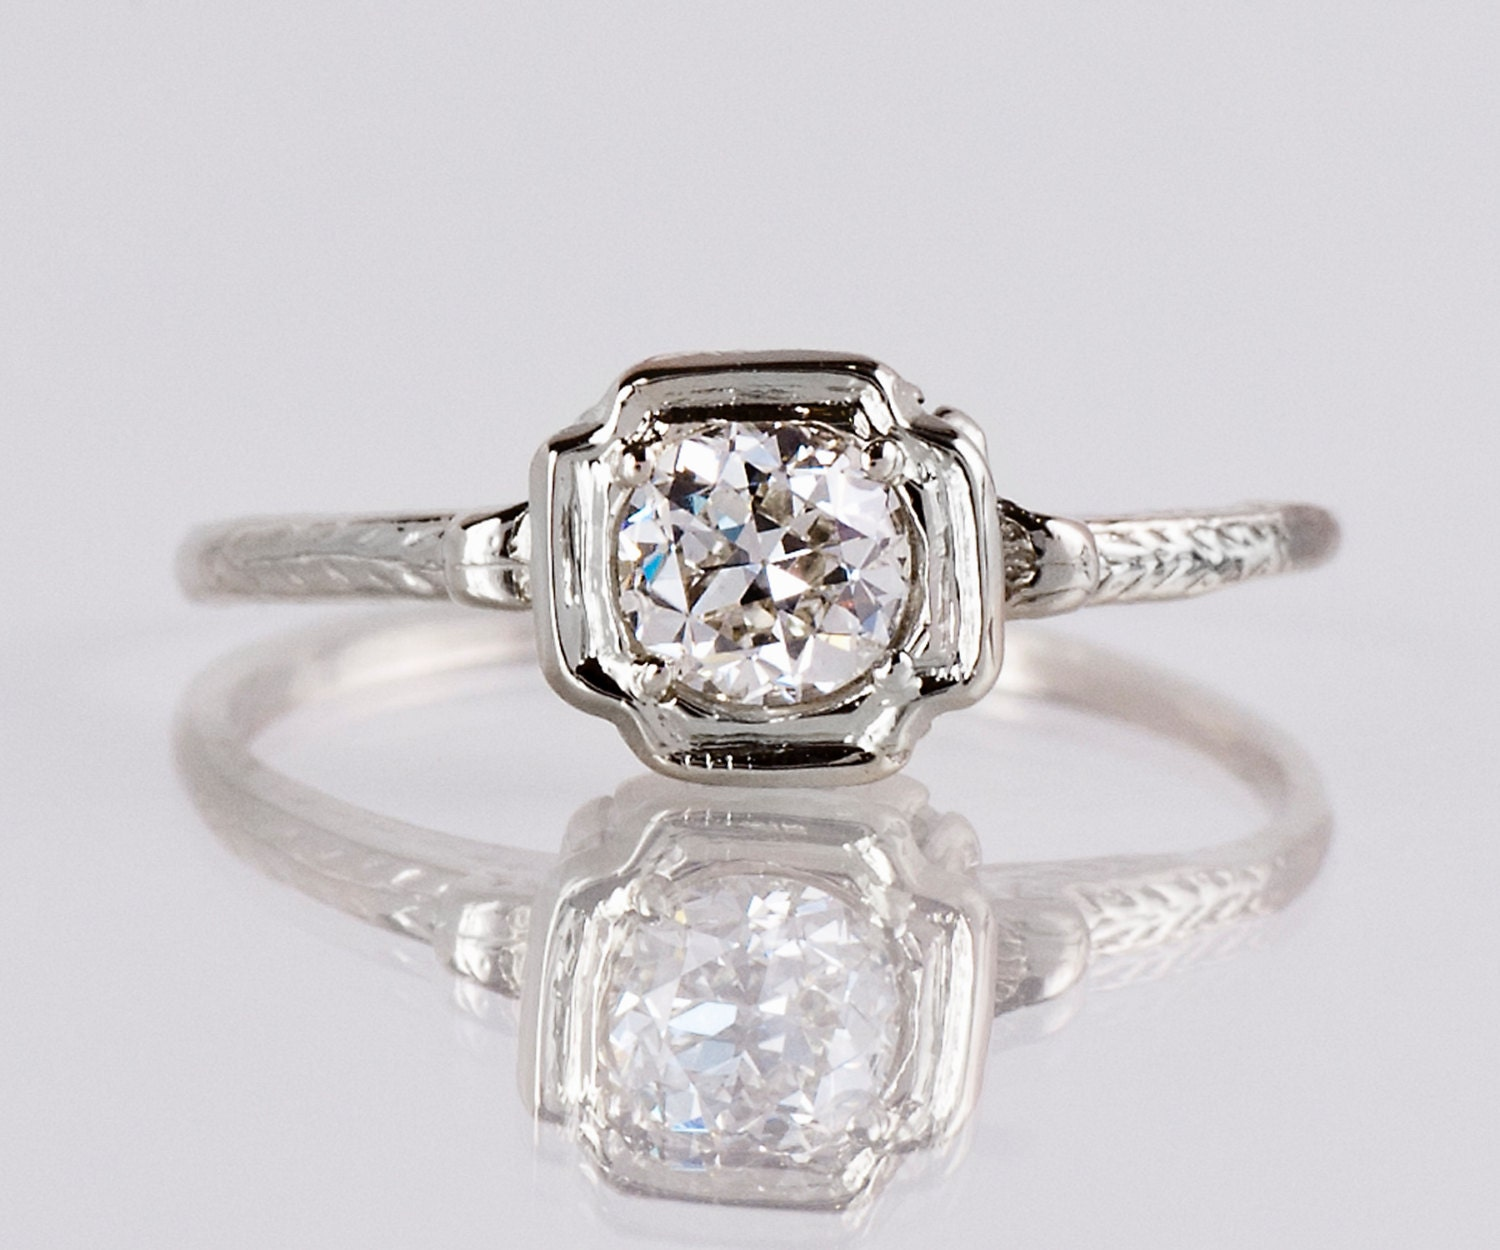 Antique Engagement Ring Antique 1920s 14K White Gold Diamond